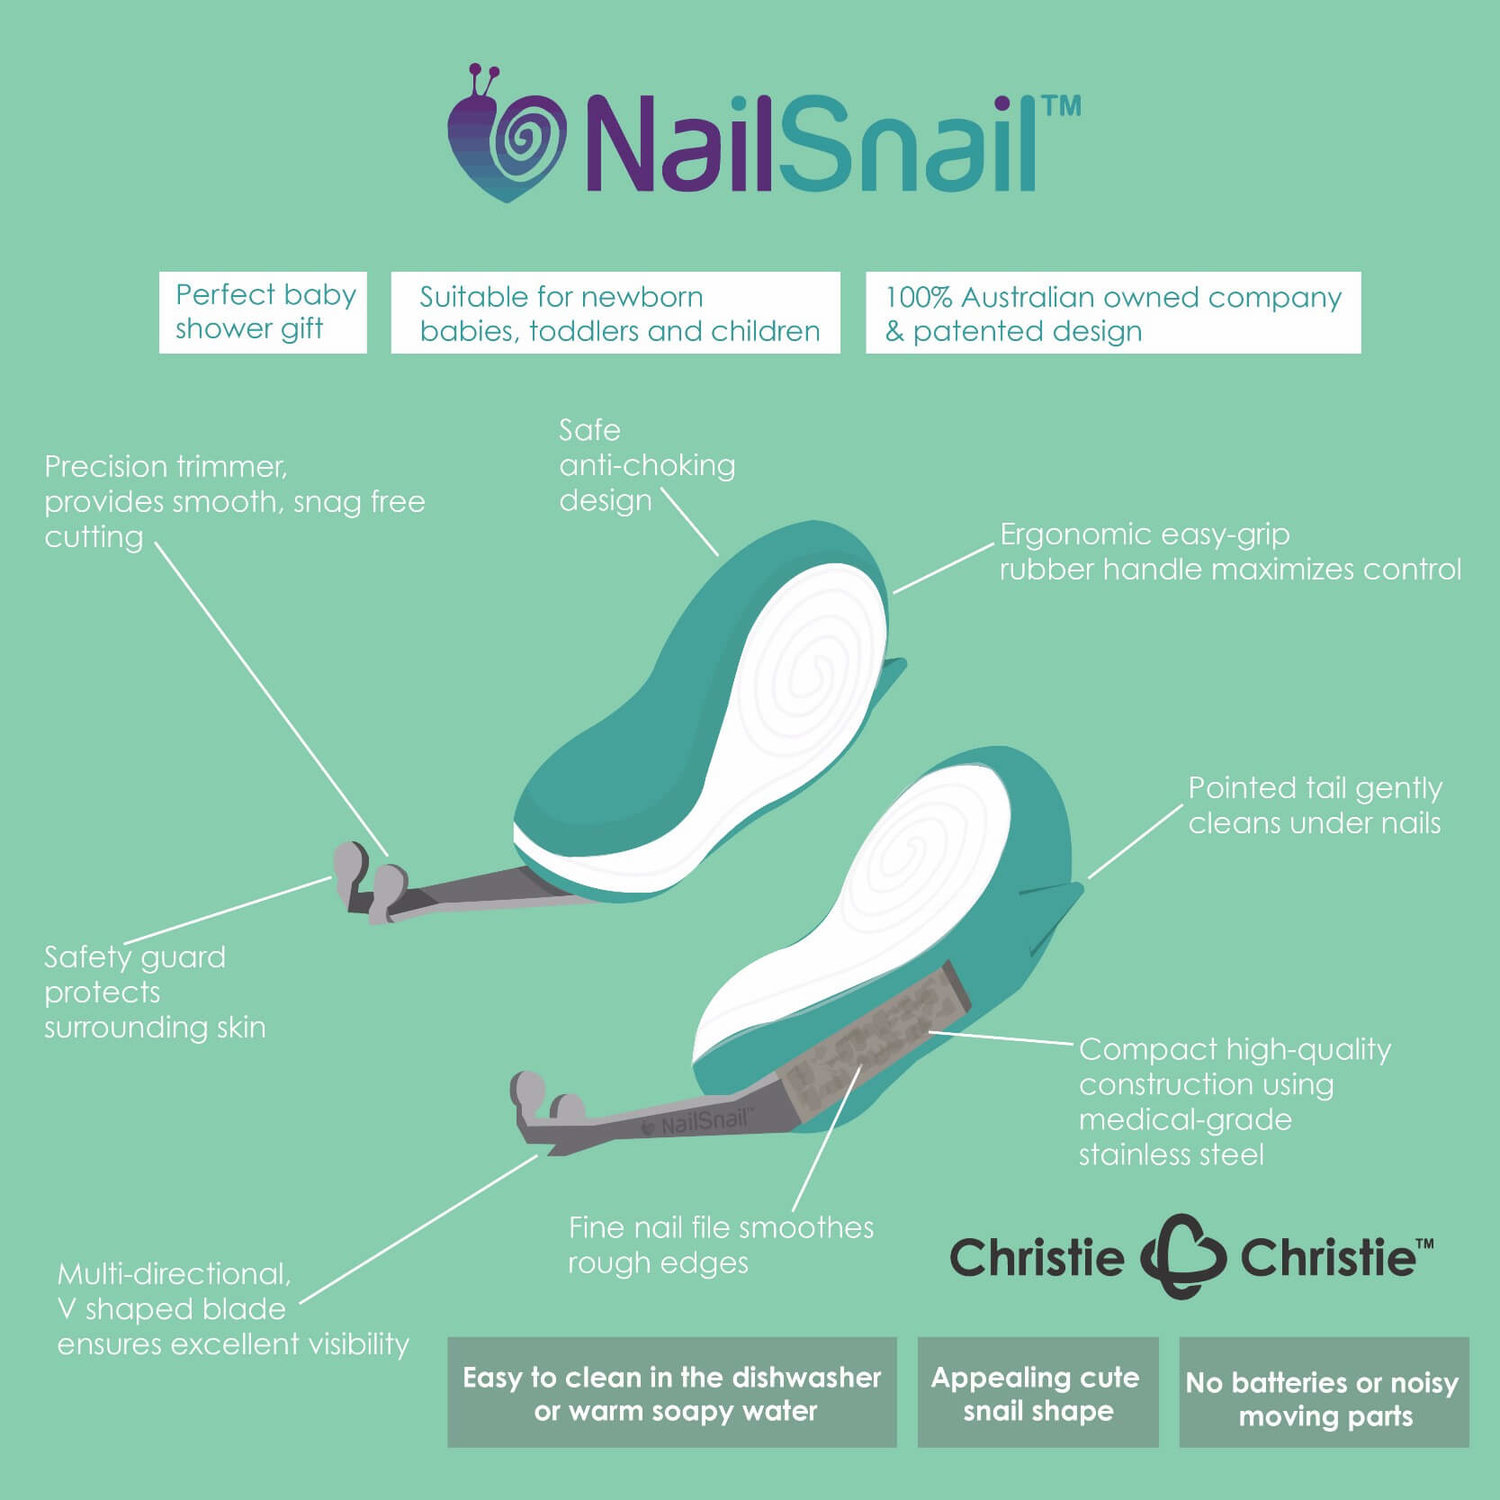 The Nail Snail - No more cut fingers and tears